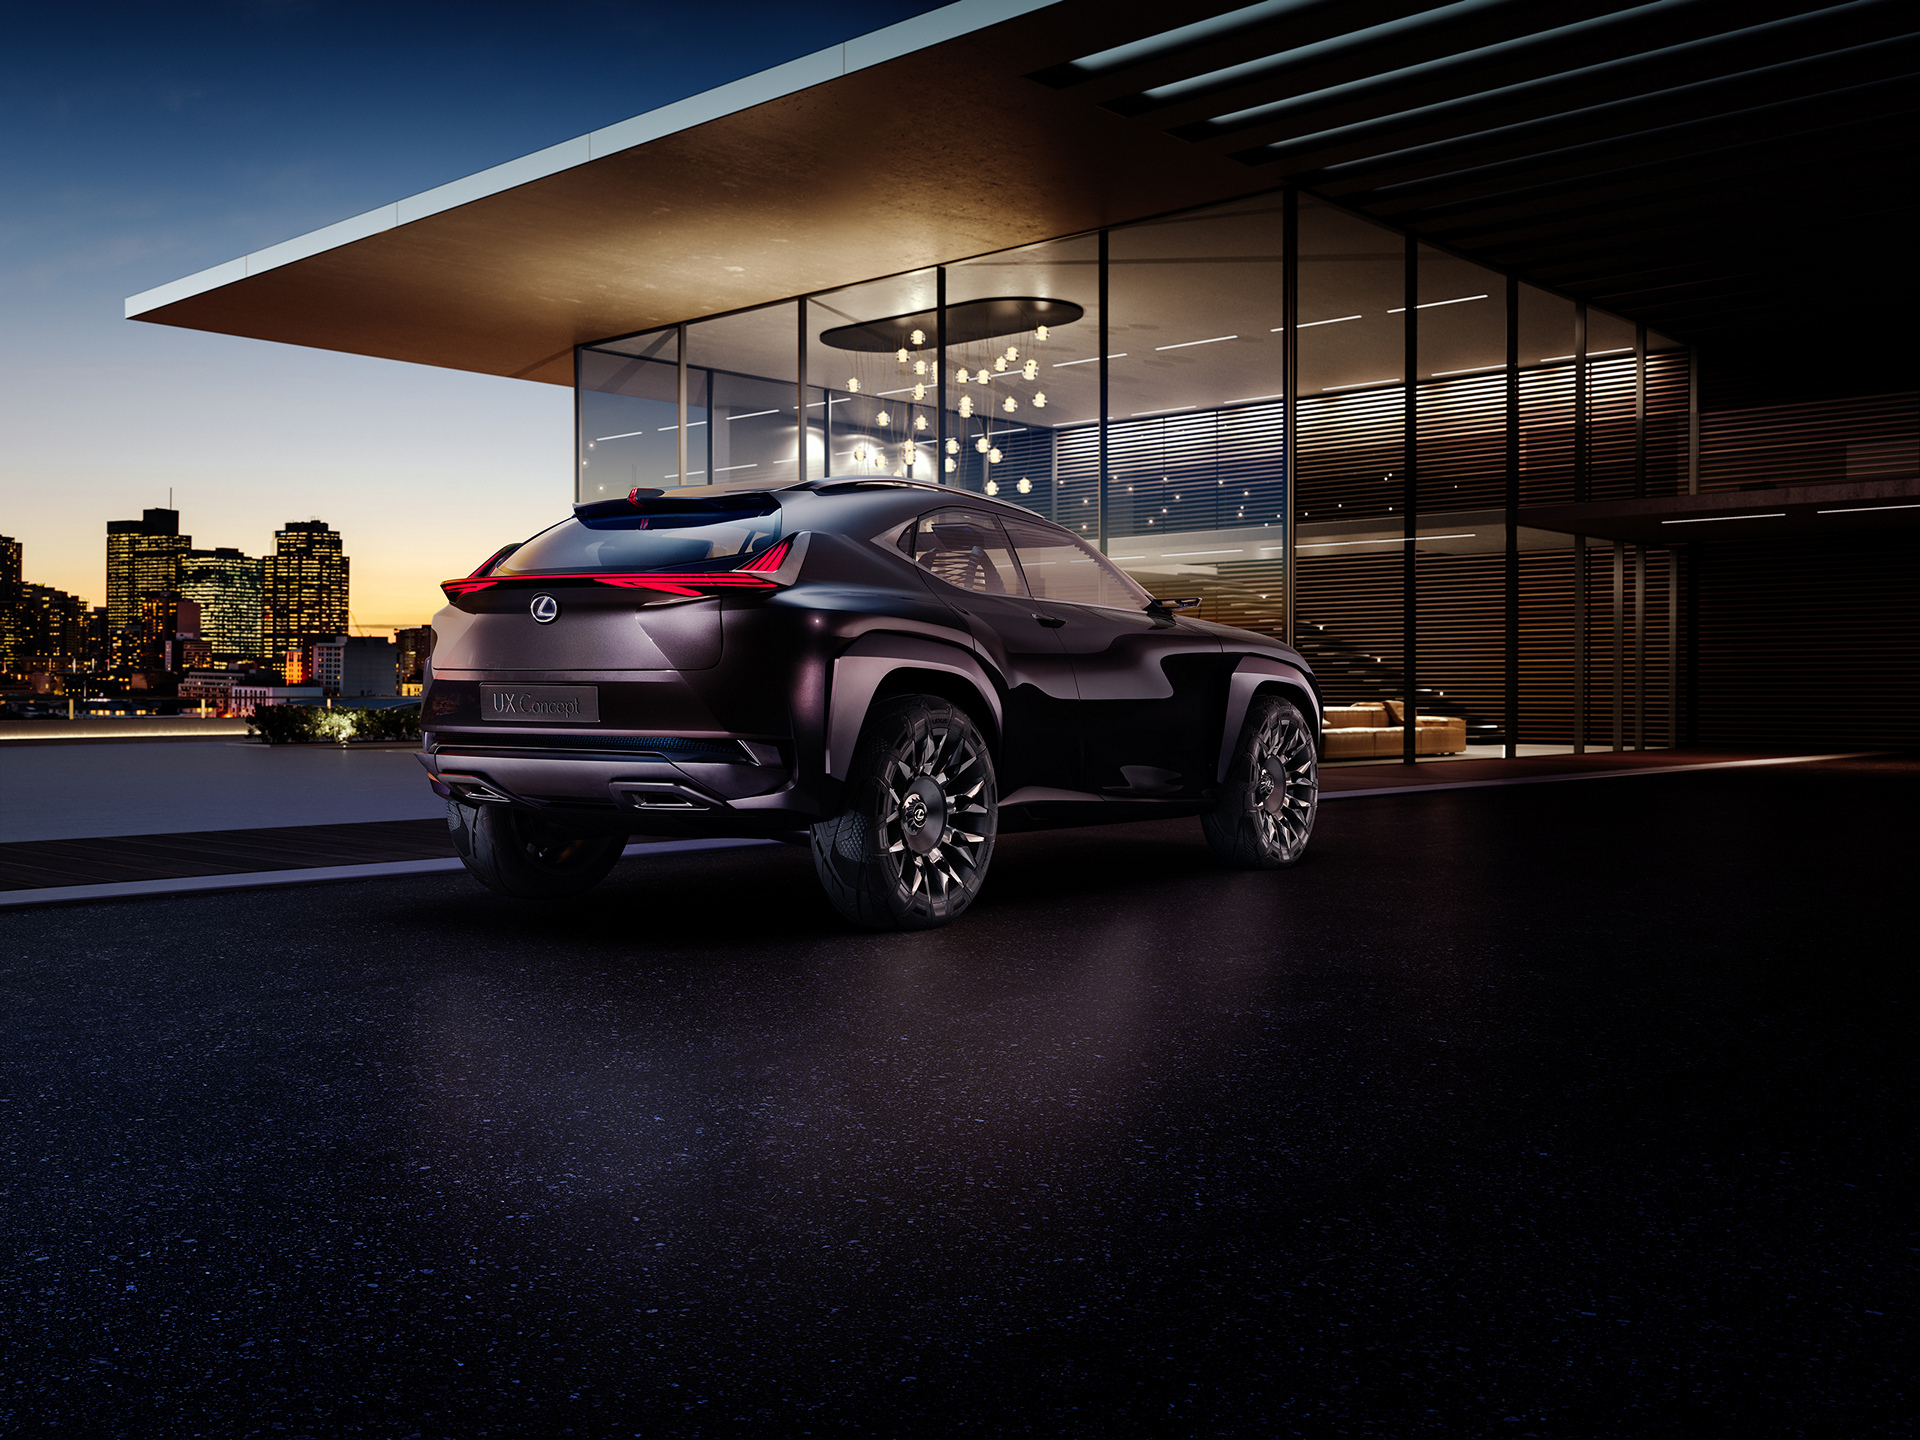 Lexus UX © Toyota Motor Corporation